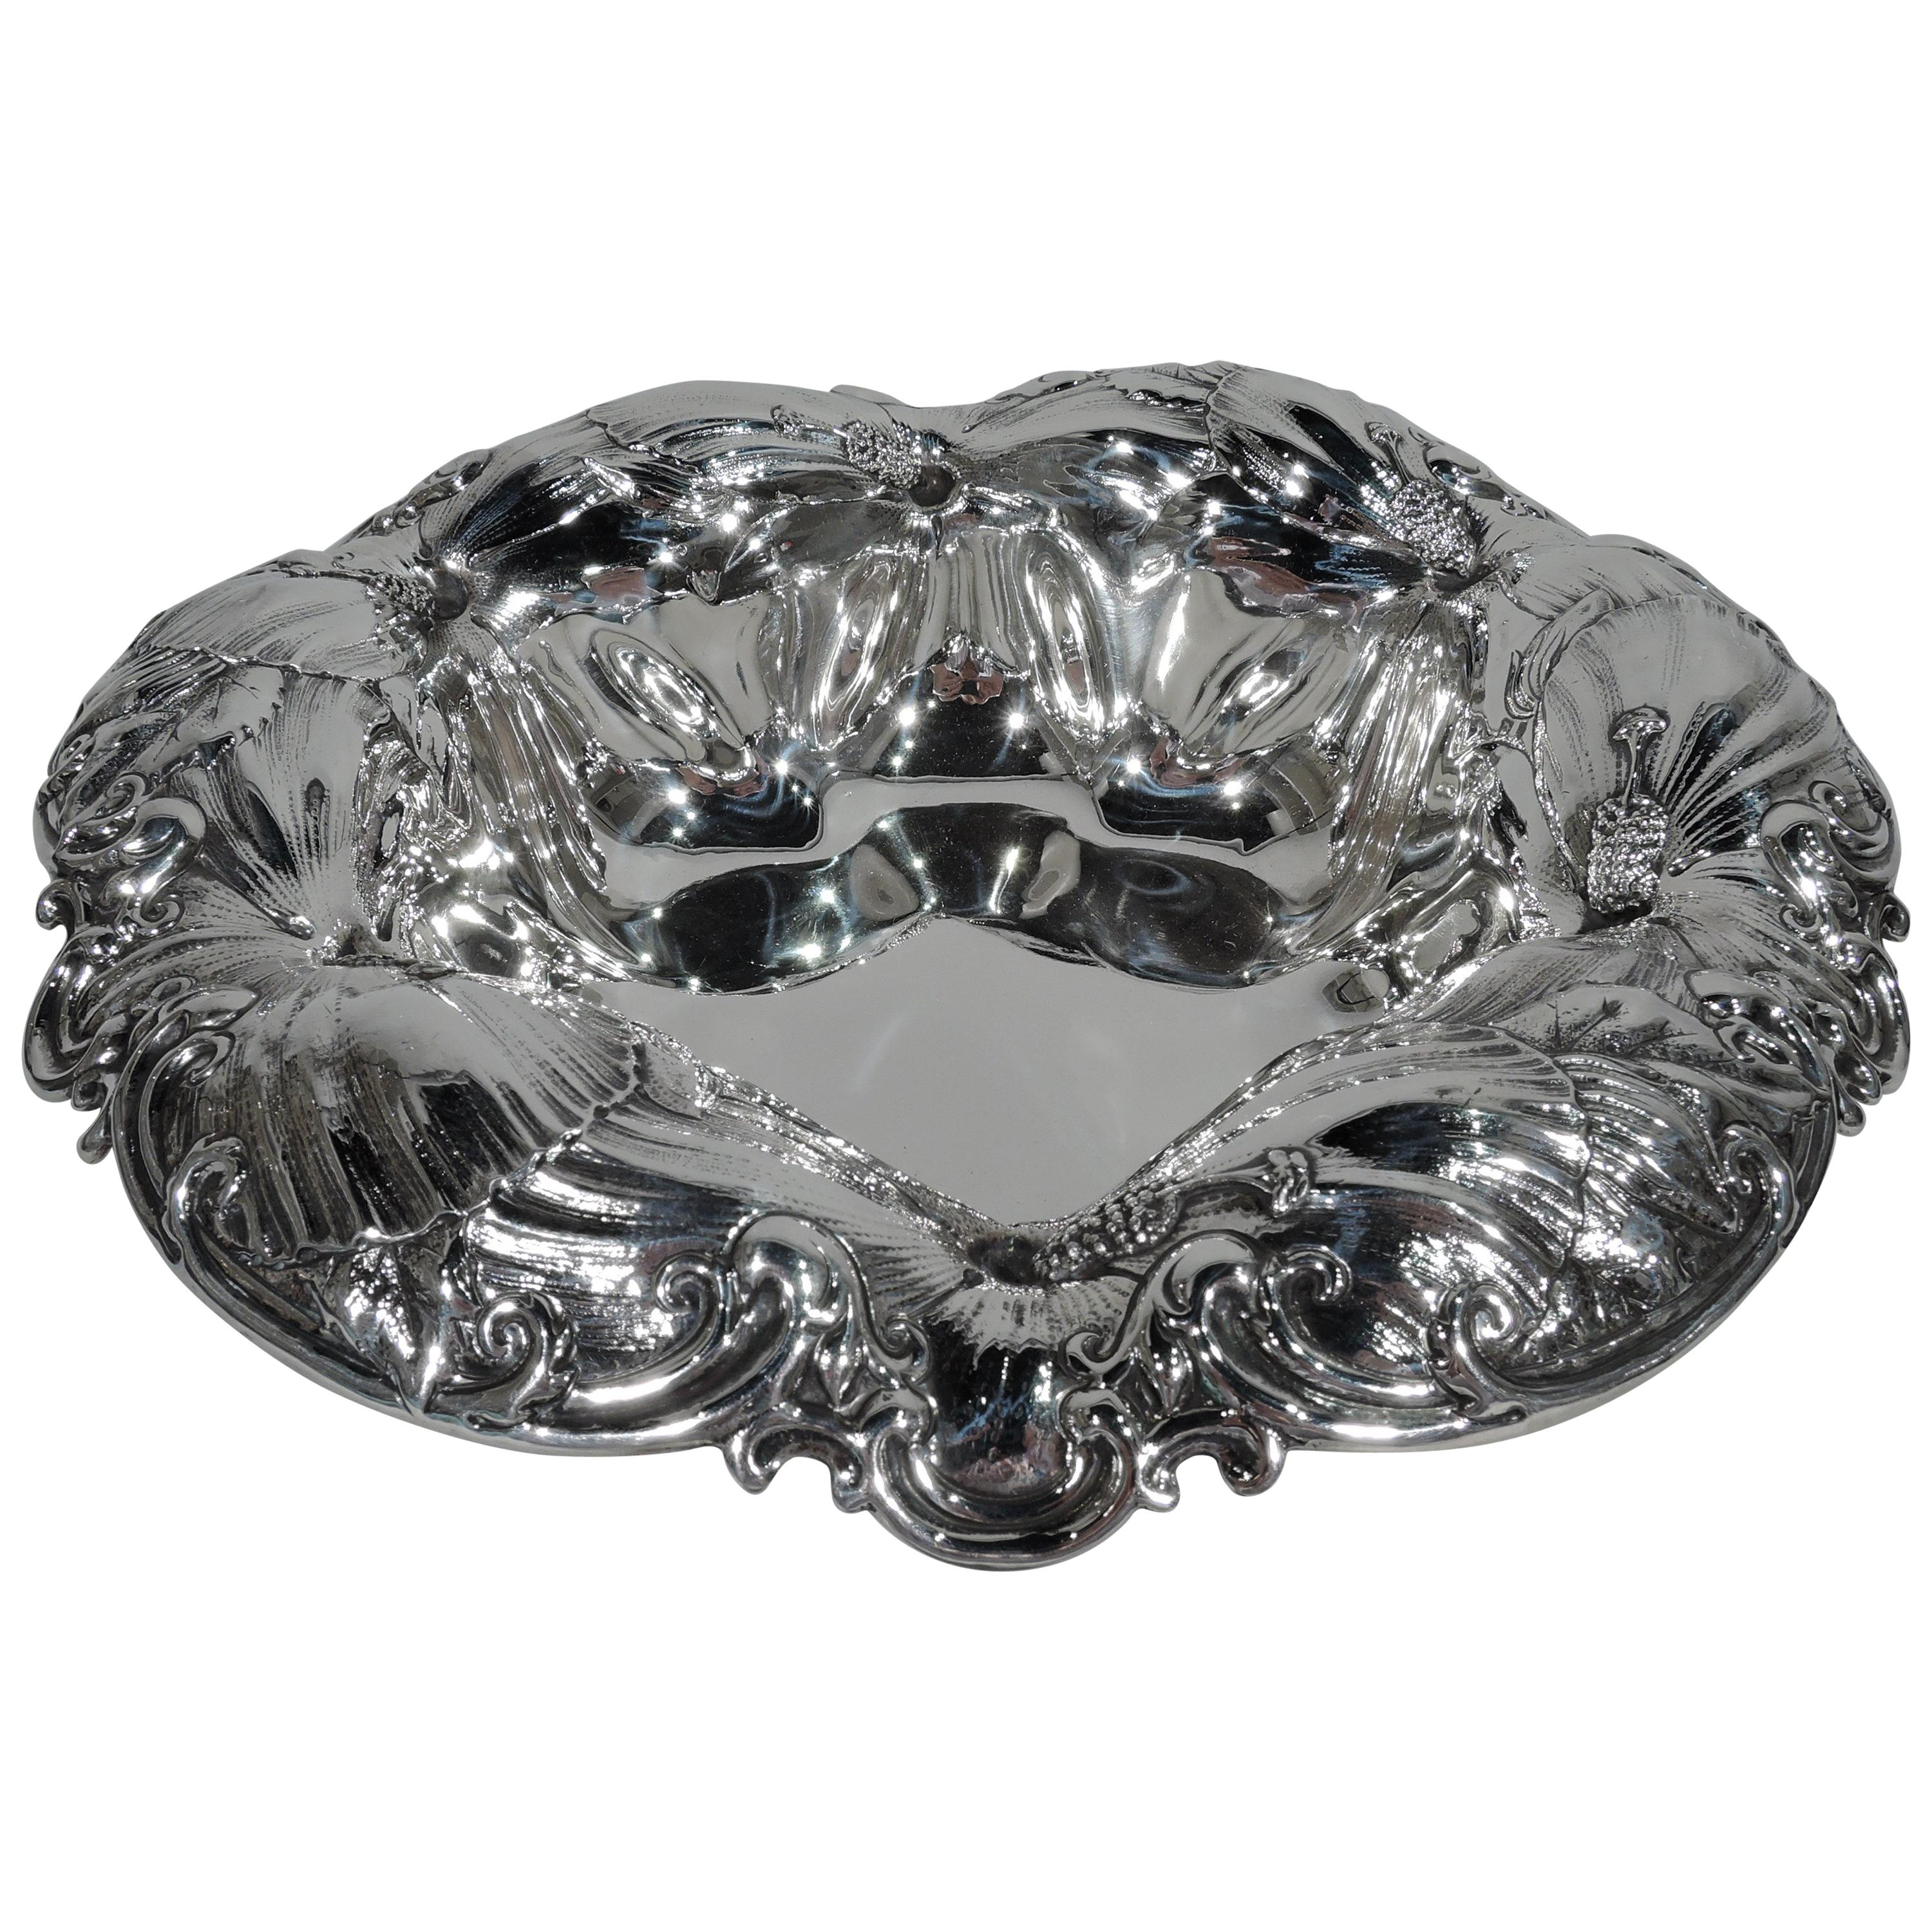 Beautiful Whiting Art Nouveau Sterling Silver Bowl with Big Blooms